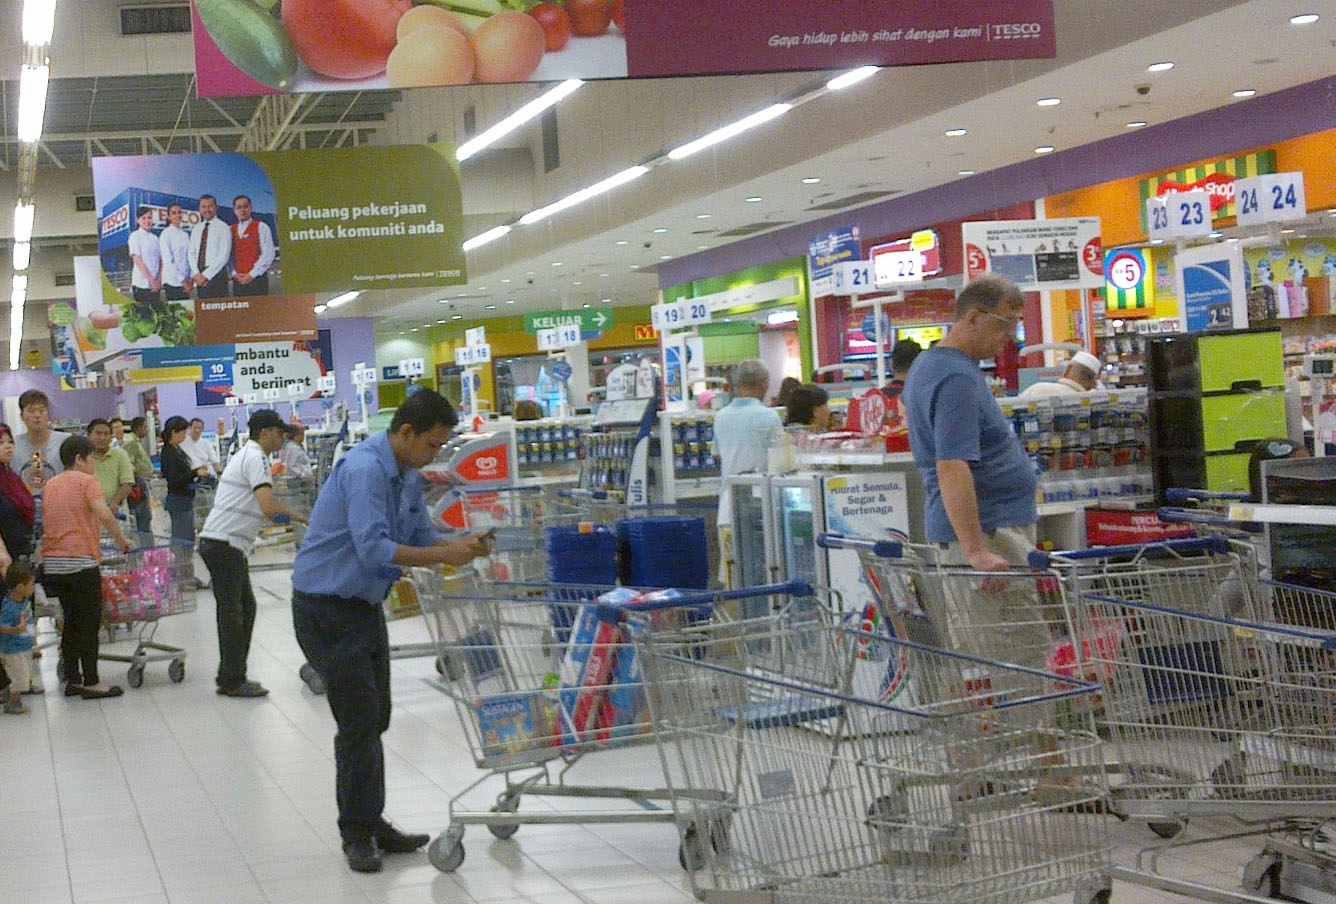 tesco malaysia marketing mix adoption Tesco can adopt various marketing strategies to improve growth and sales, interest  price is a section of the marketing mix, when considering prices if a product is priced too low or too high, it could mean a loss of sales for an organisation.